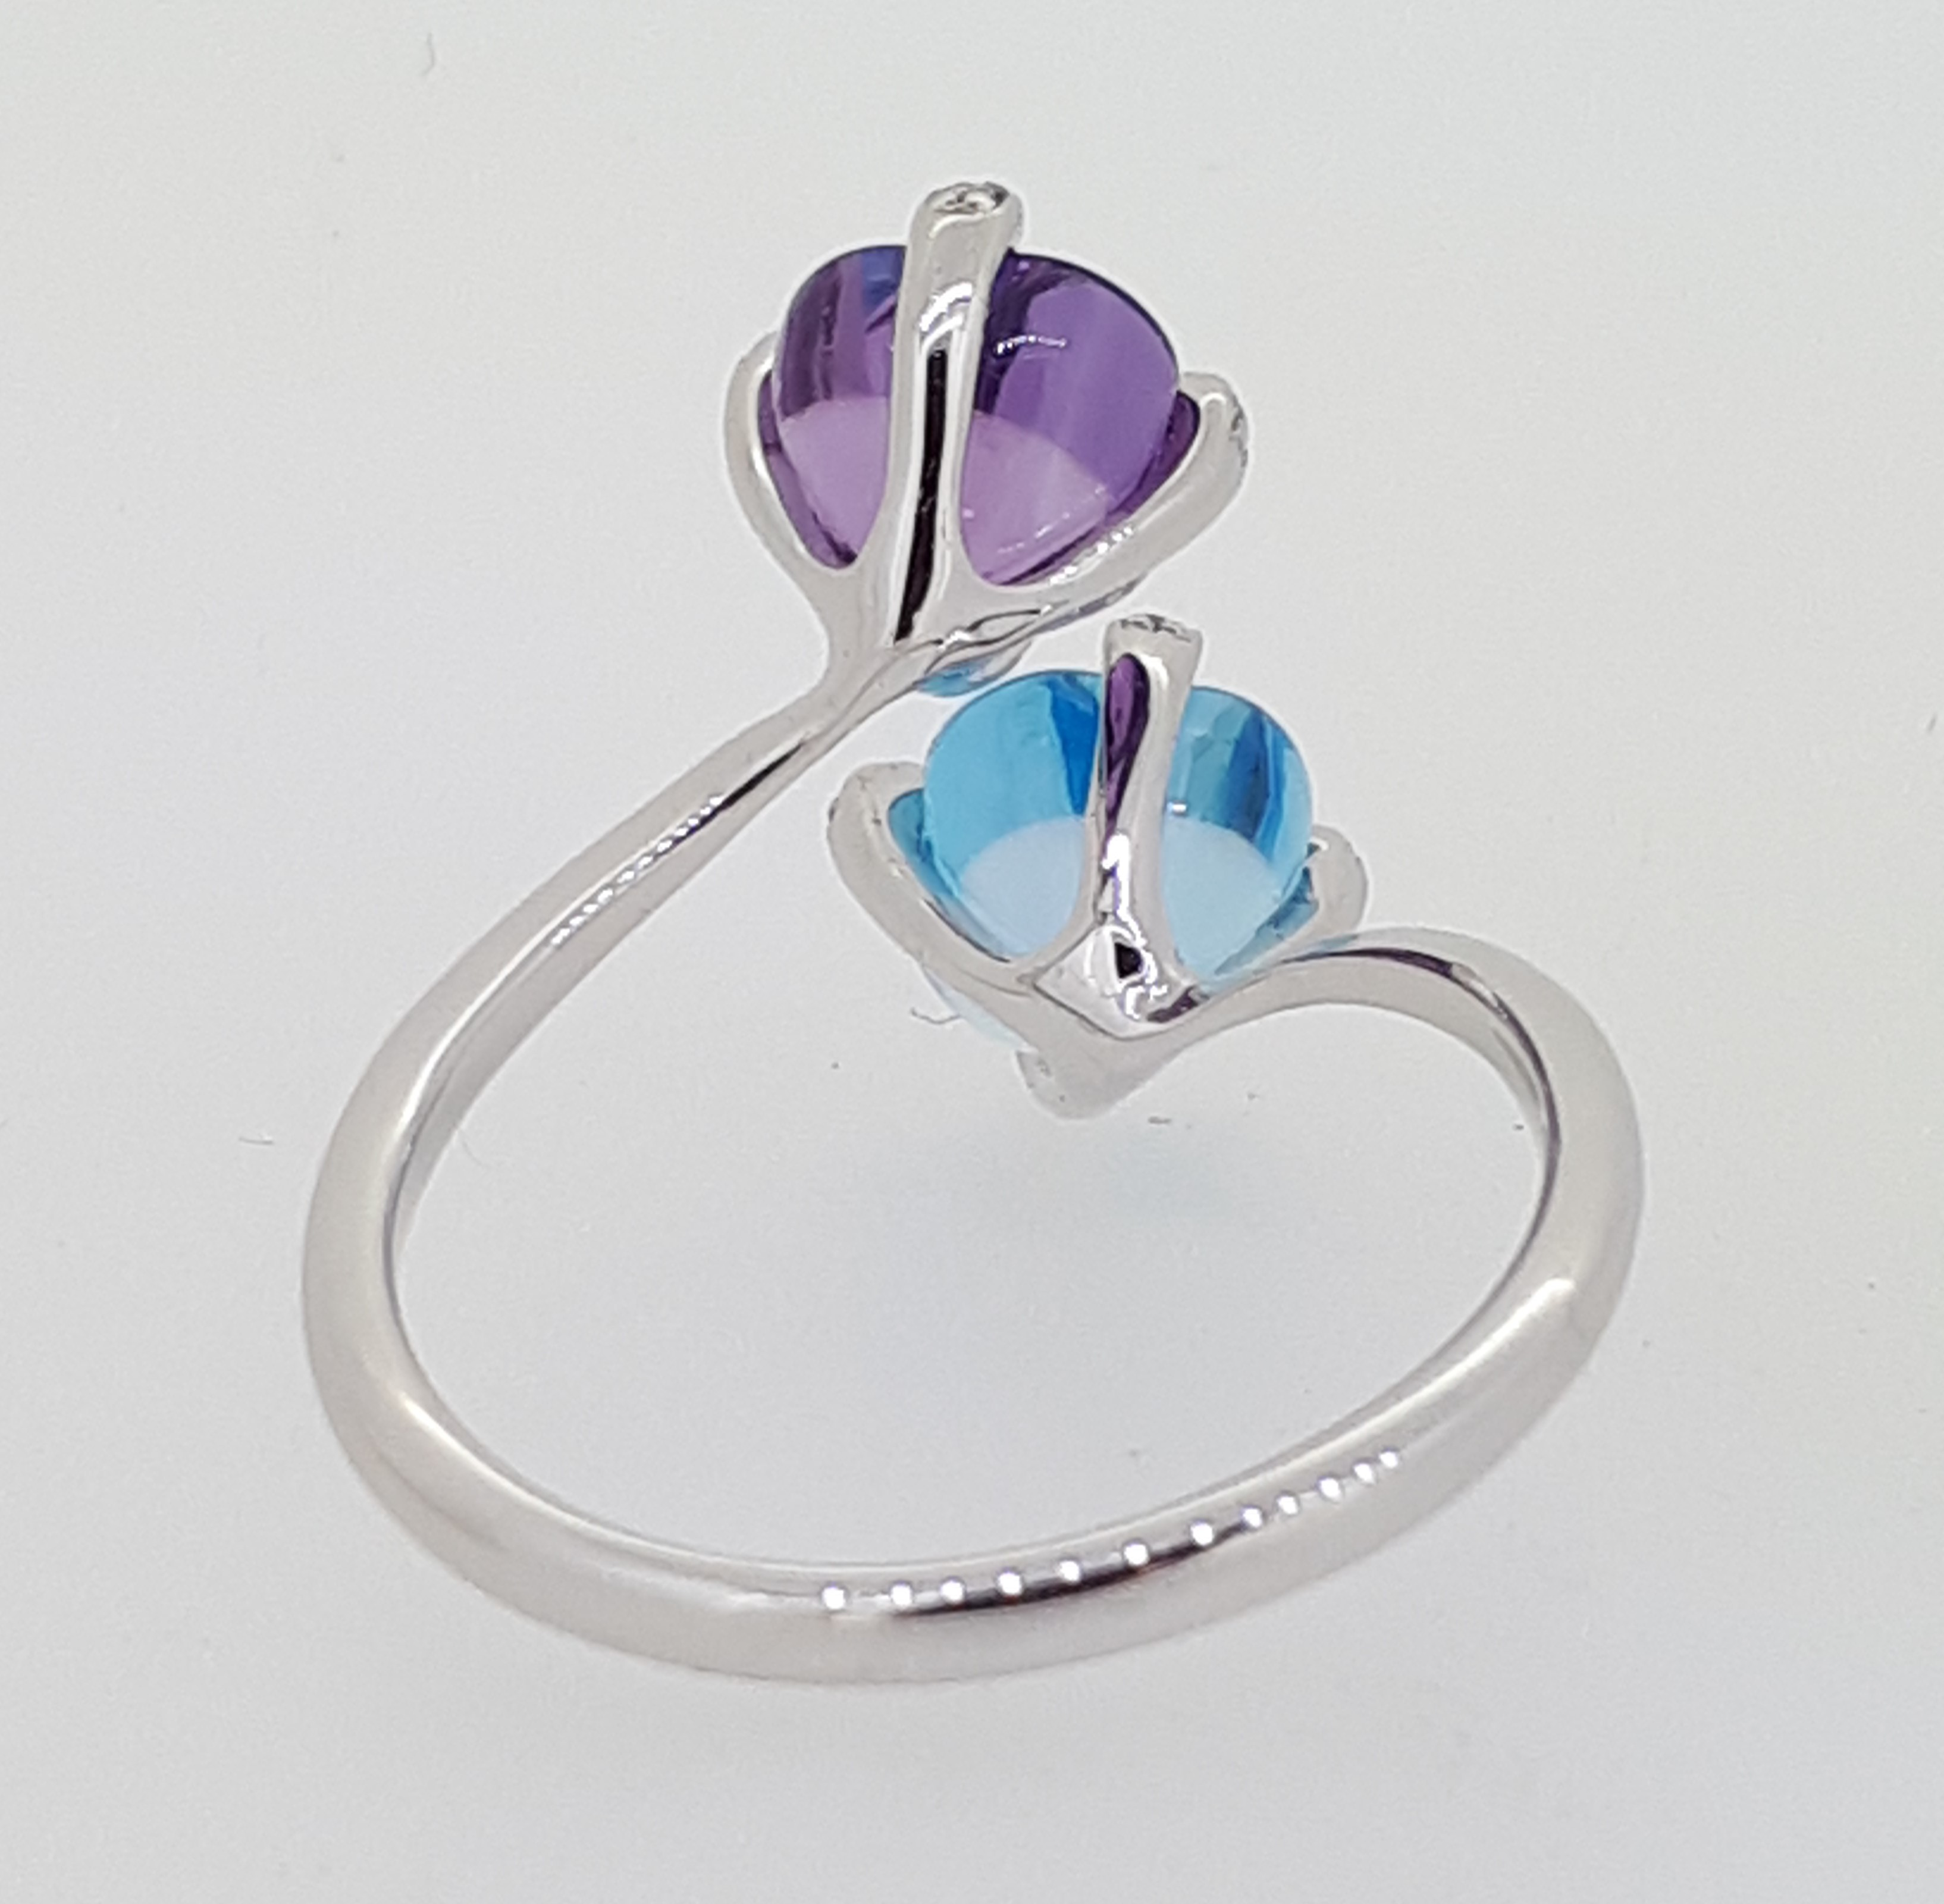 18ct (750) Topaz & Amethyst Crossover Ring with Diamond Claw Setting - Image 6 of 6